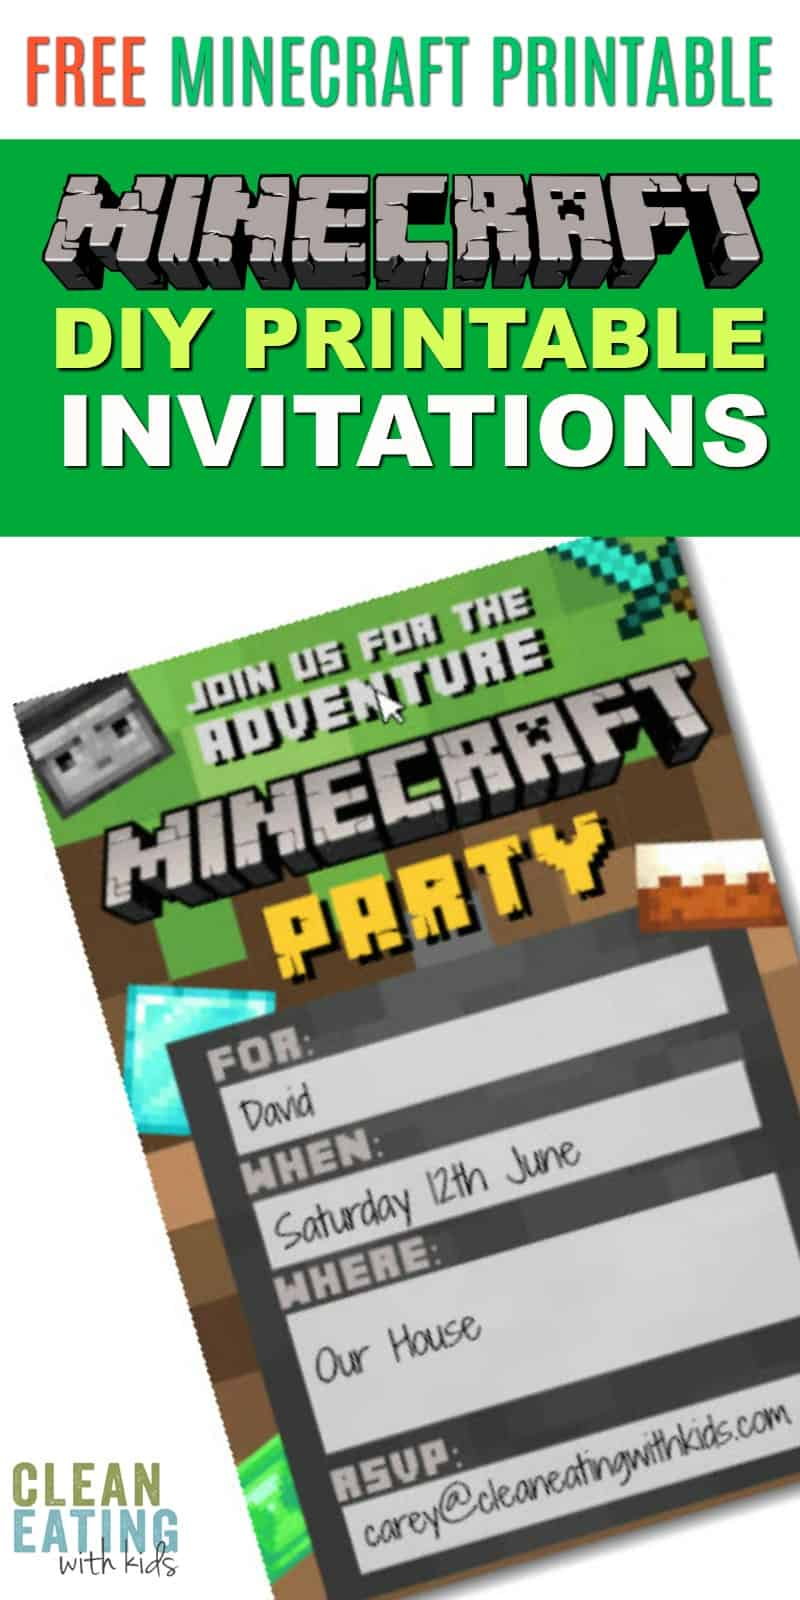 Free Diy Printable Minecraft Birthday Invitation Clean Eating With